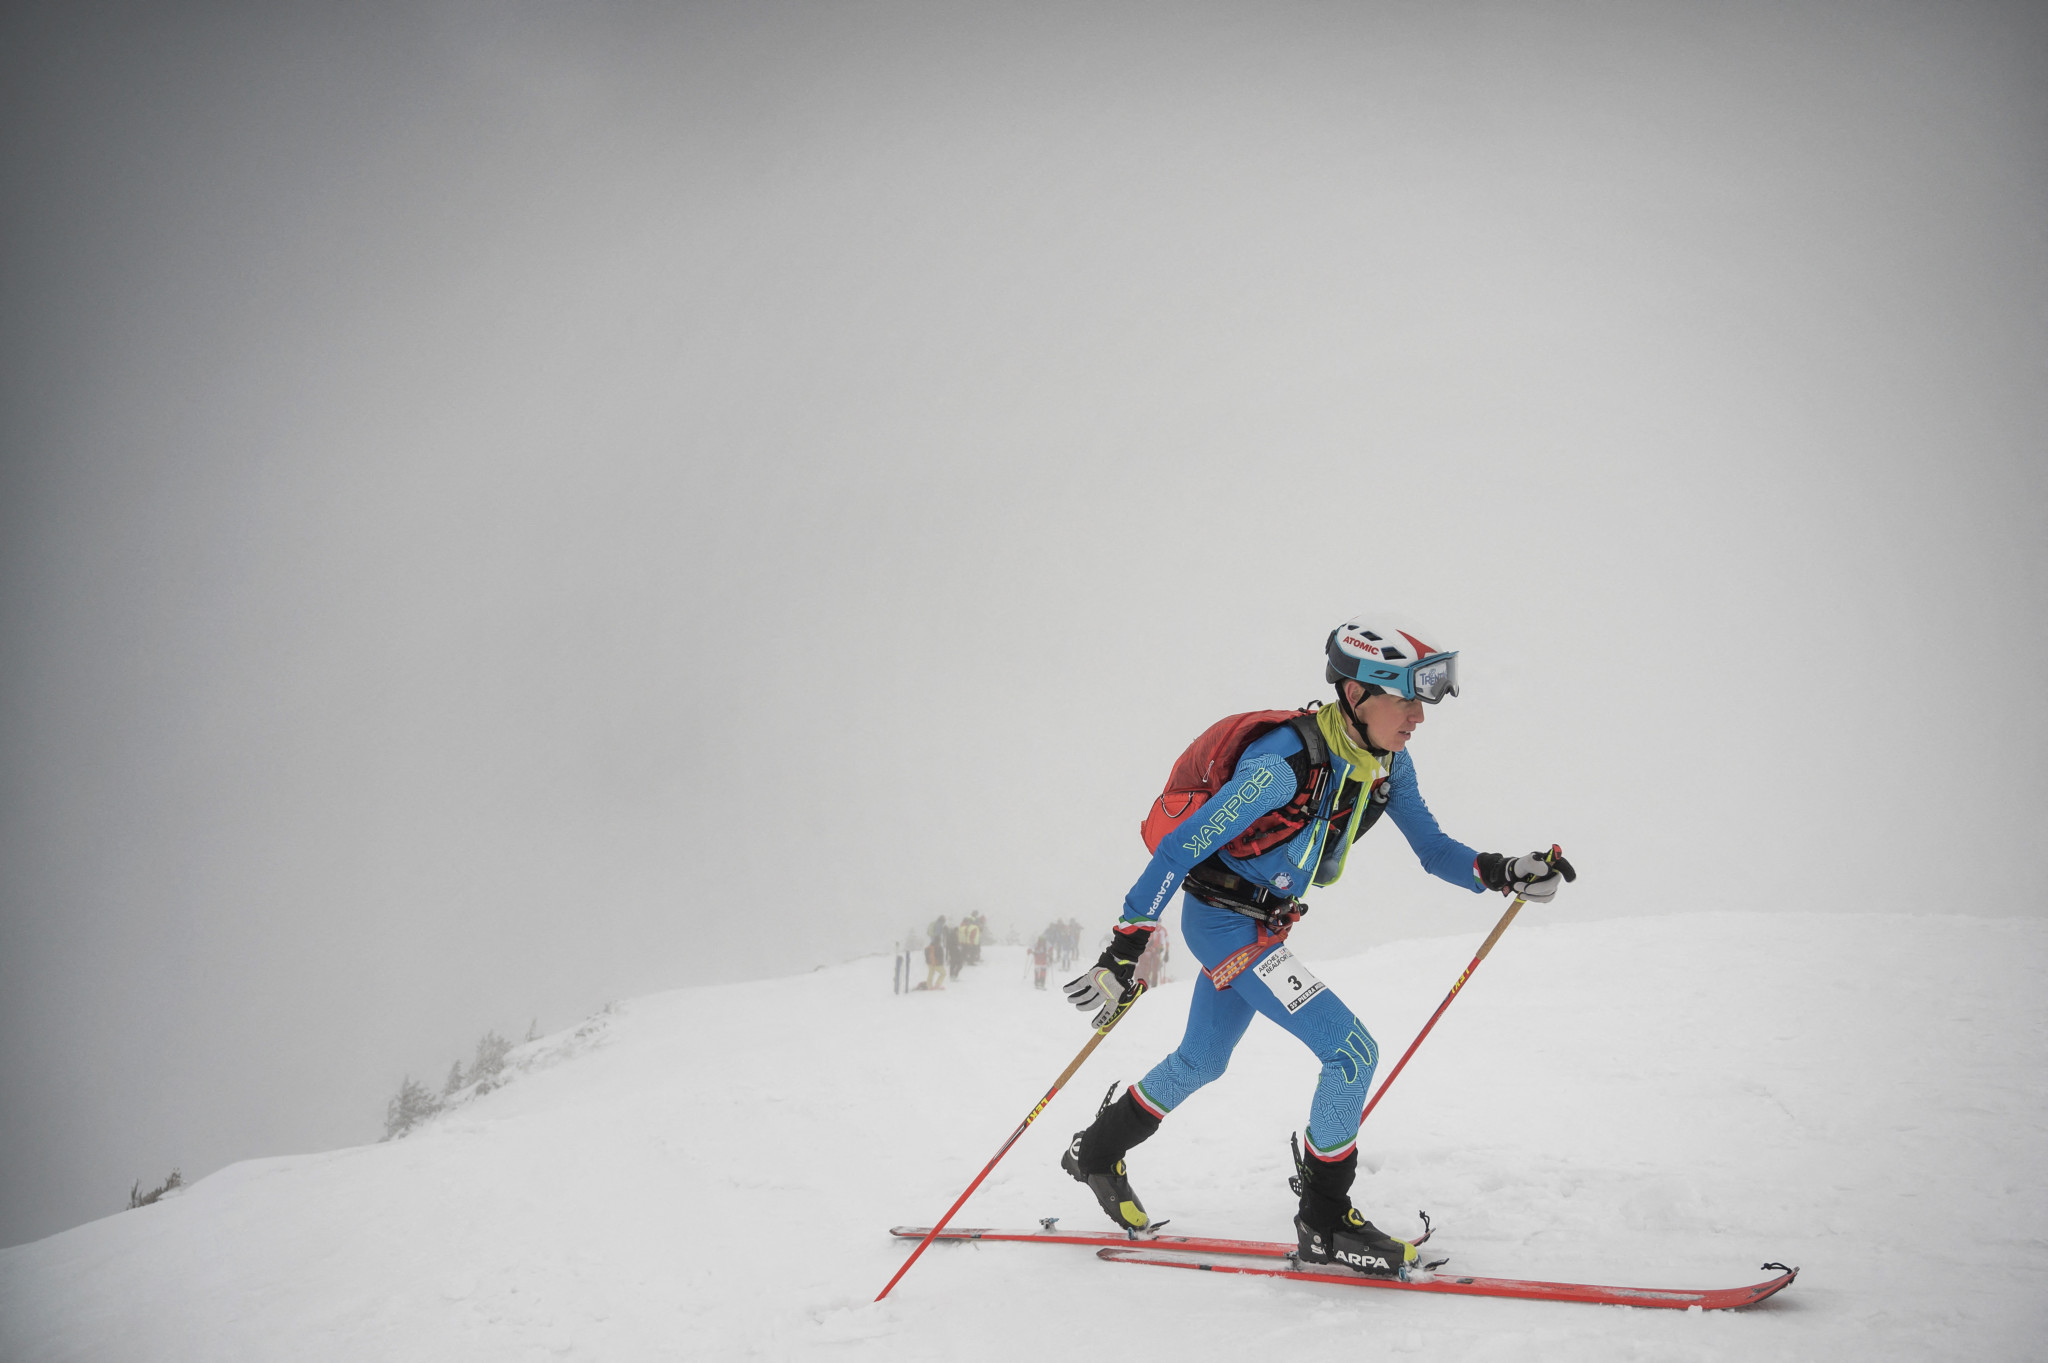 Ski mountaineering has been added to the Milan Cortina 2026 Winter Olympic programme ©Getty Images